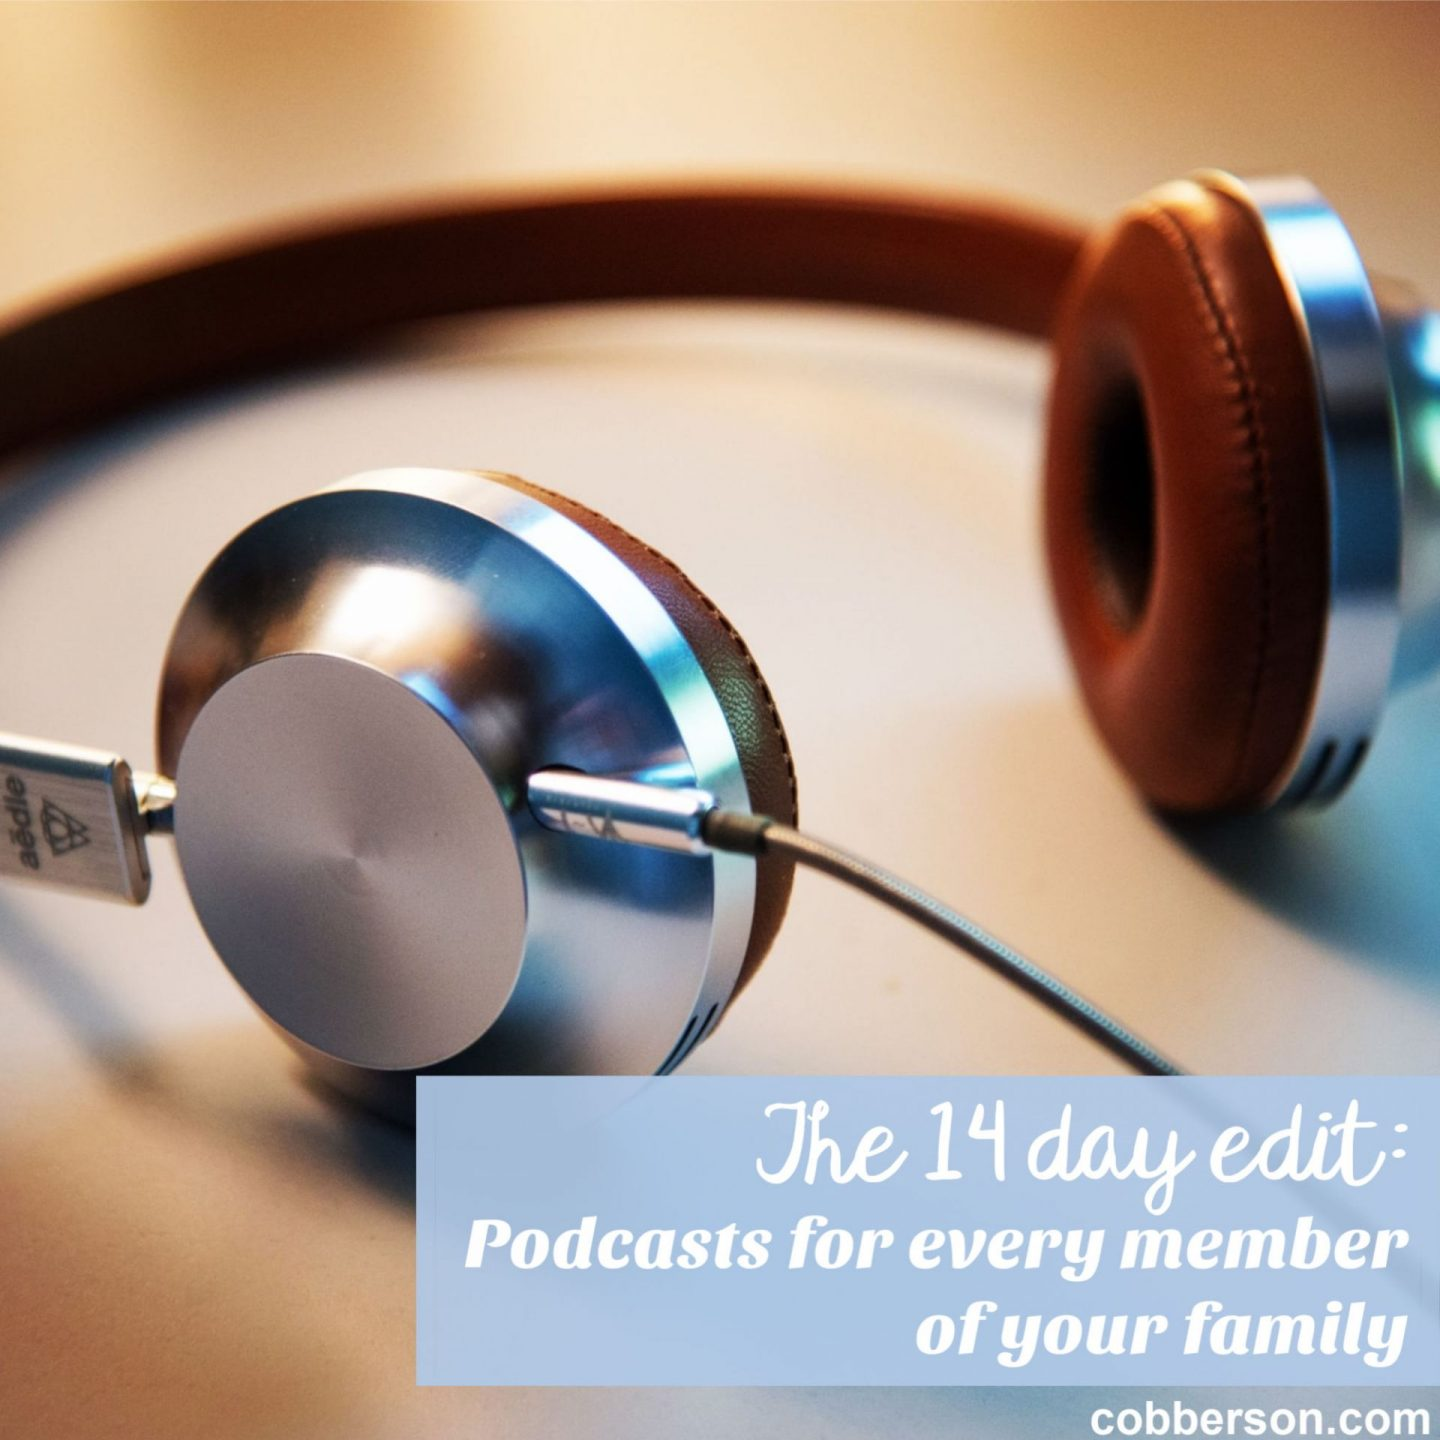 podcasts for the whole family coronavirus covid-19